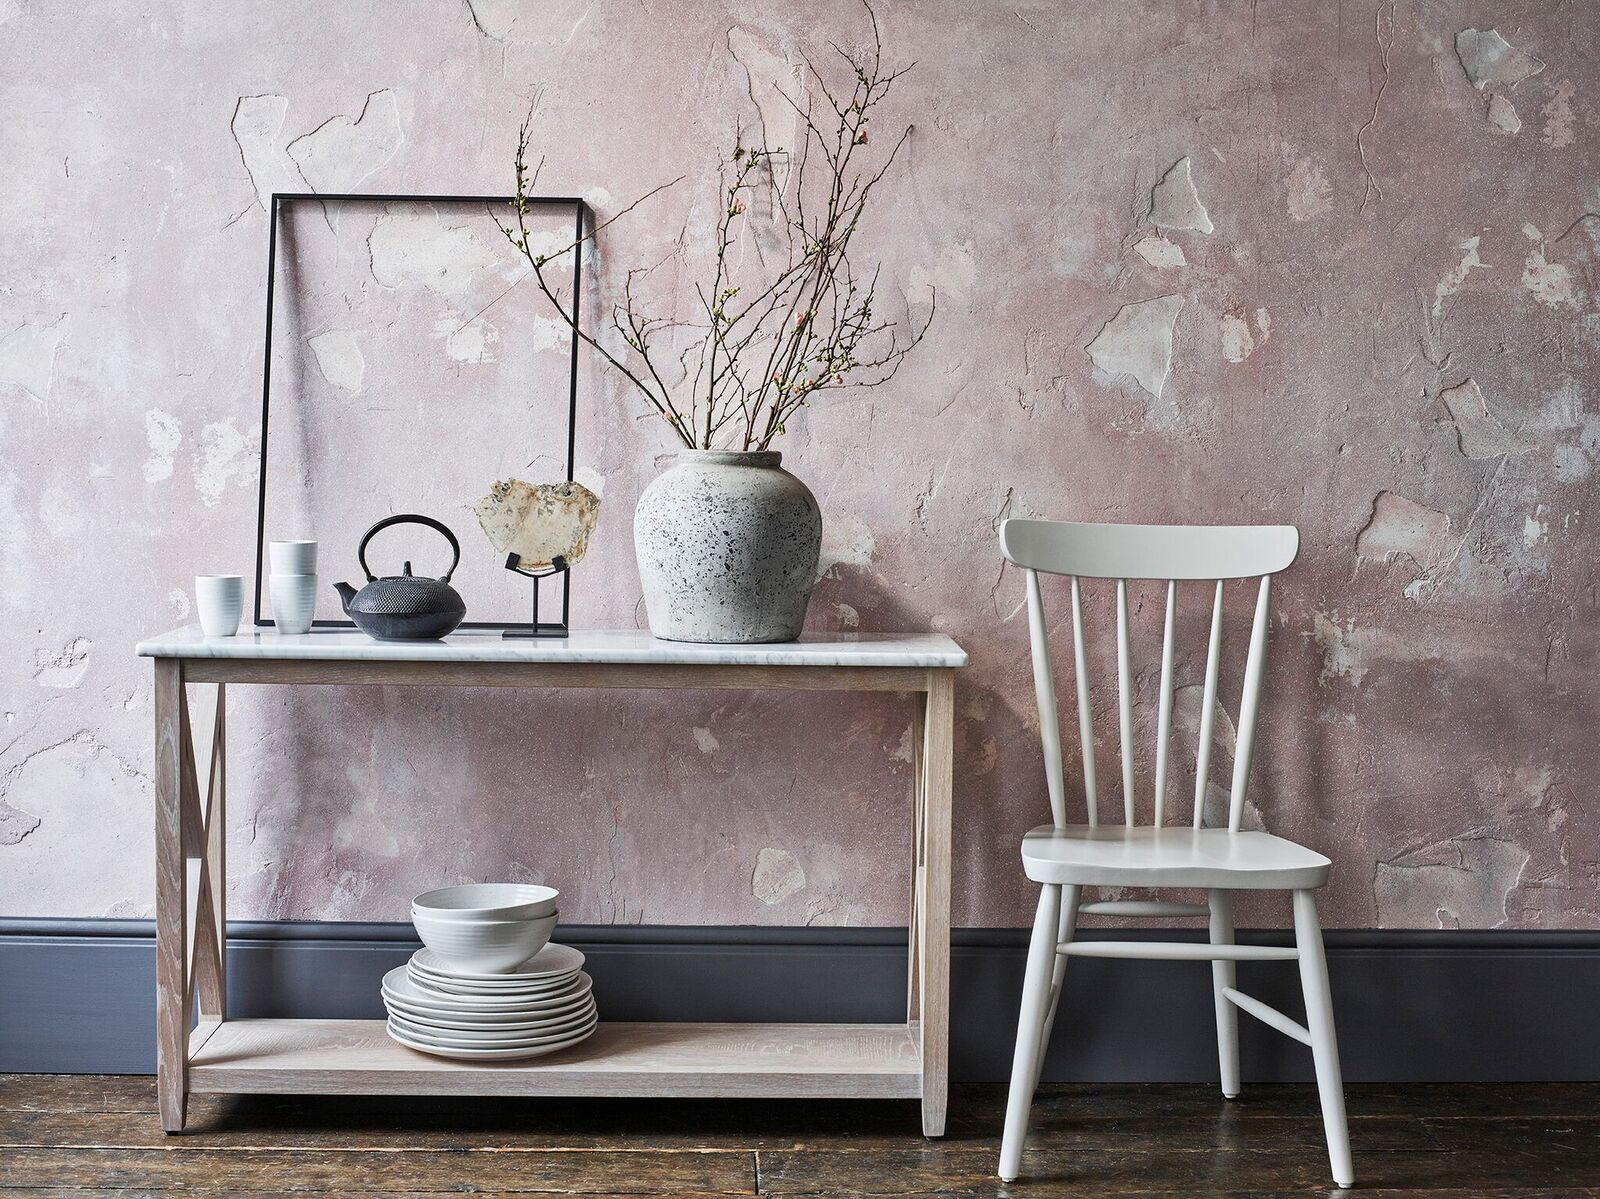 Neptune Accessories - Accessories are what make a room feel lived in and loved.Our store showcases Neptune products in inspiring room sets that combine accessories of antique wood, chunky white ceramic and using Life like flowers to finish the look